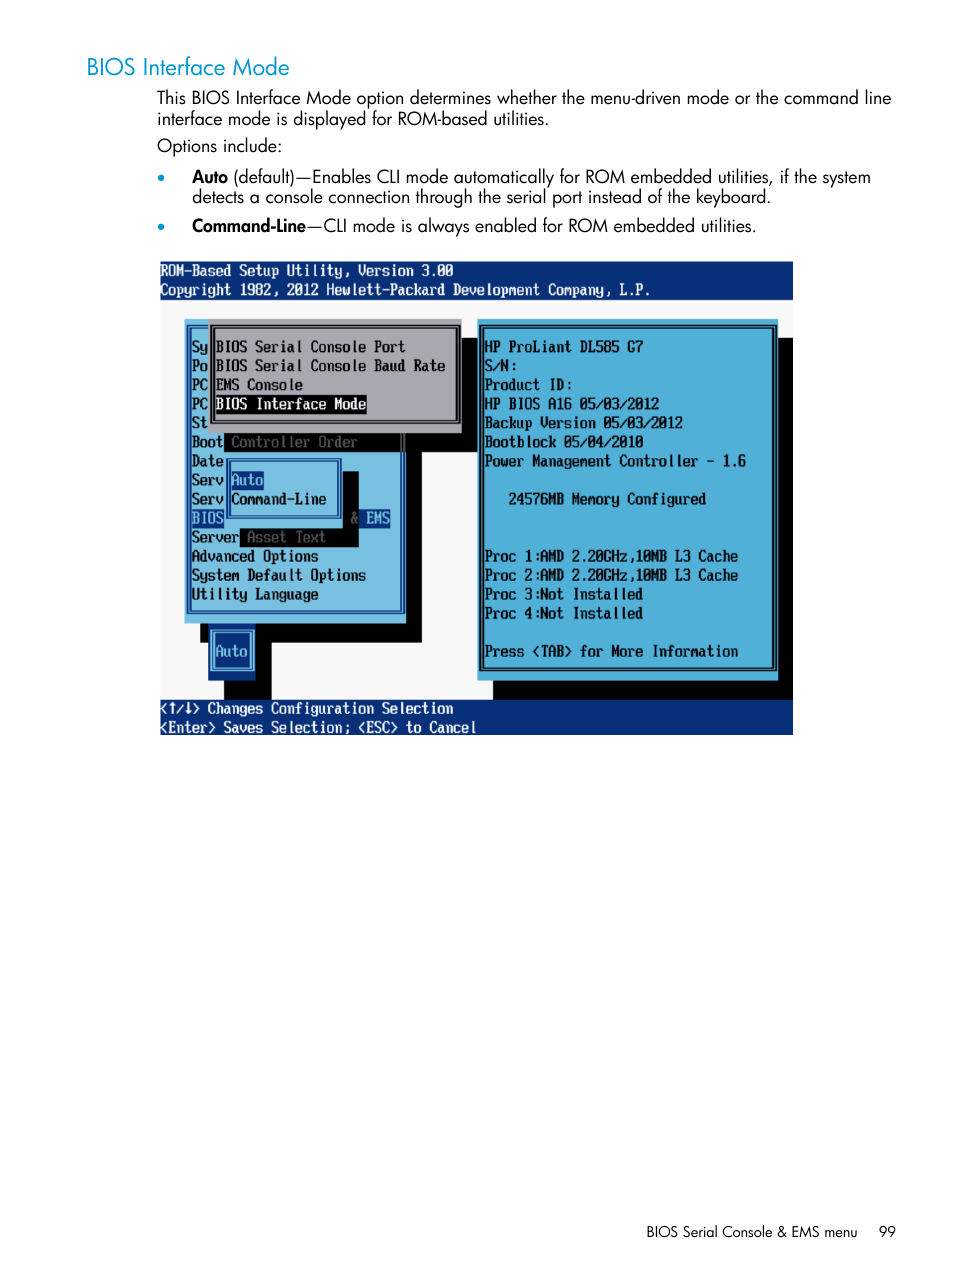 Bios interface mode | HP ROM-Based Setup Utility User Manual | Page